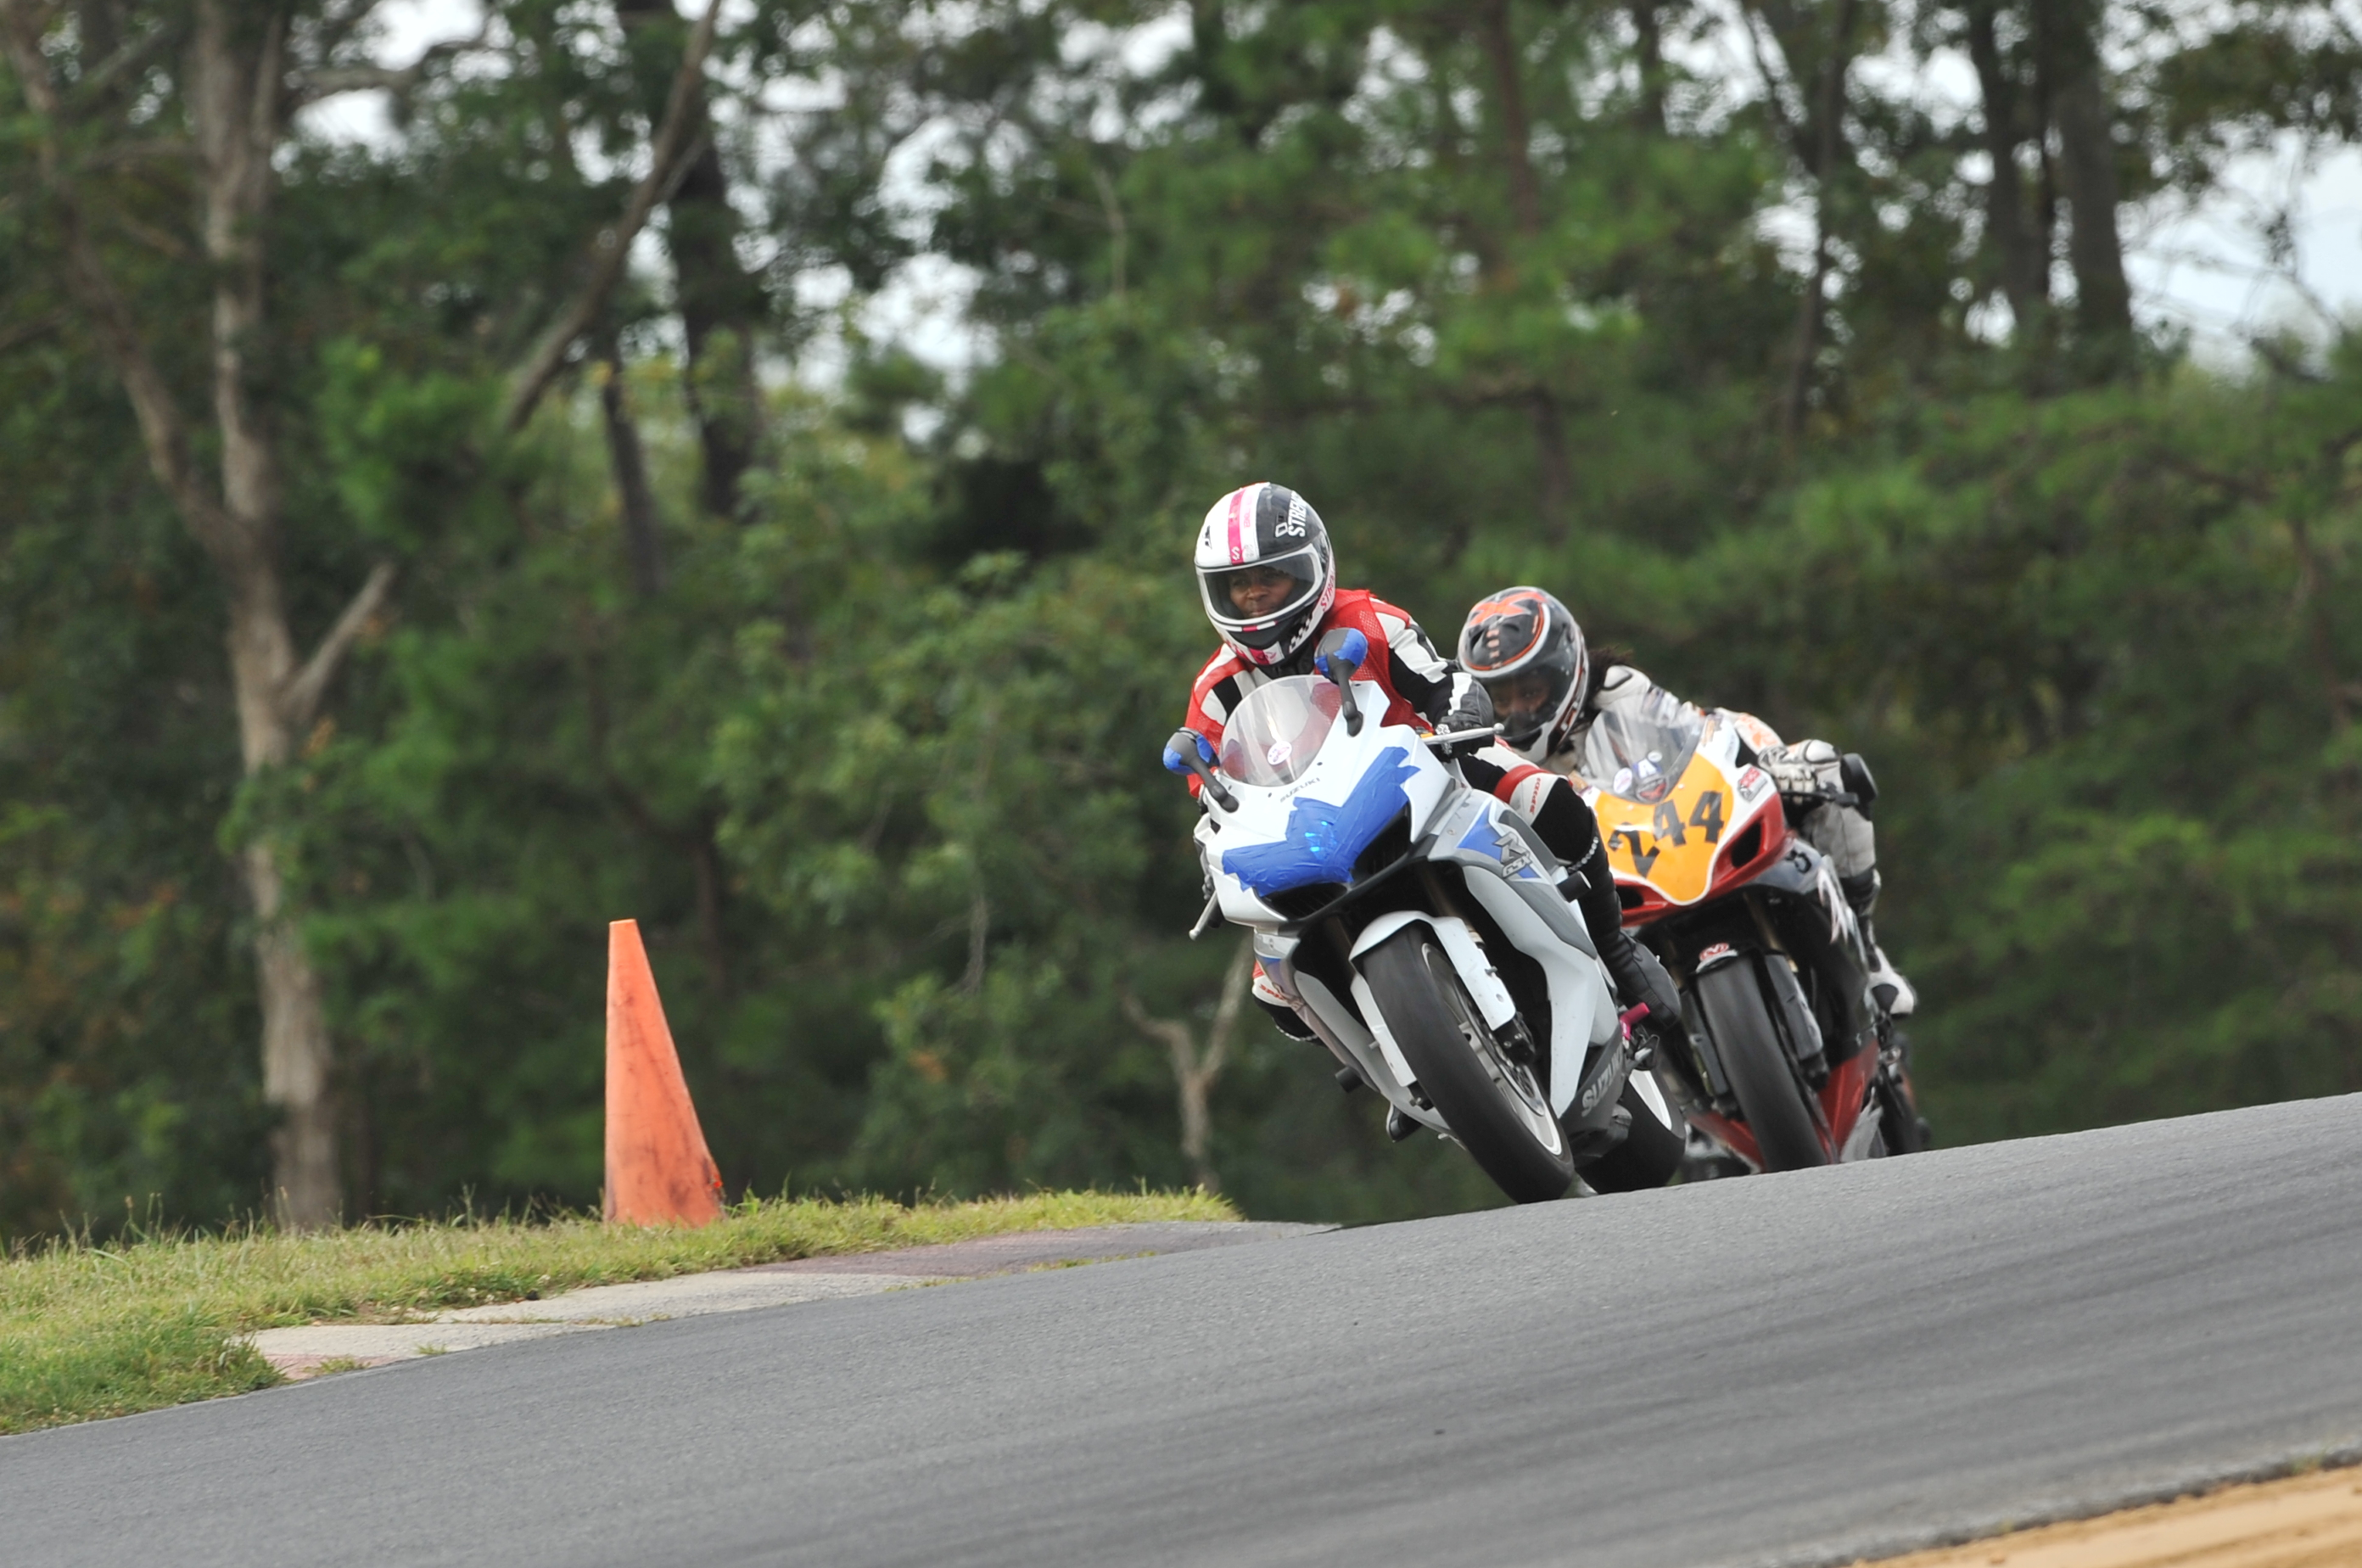 Petey and SJ24 Roadracing